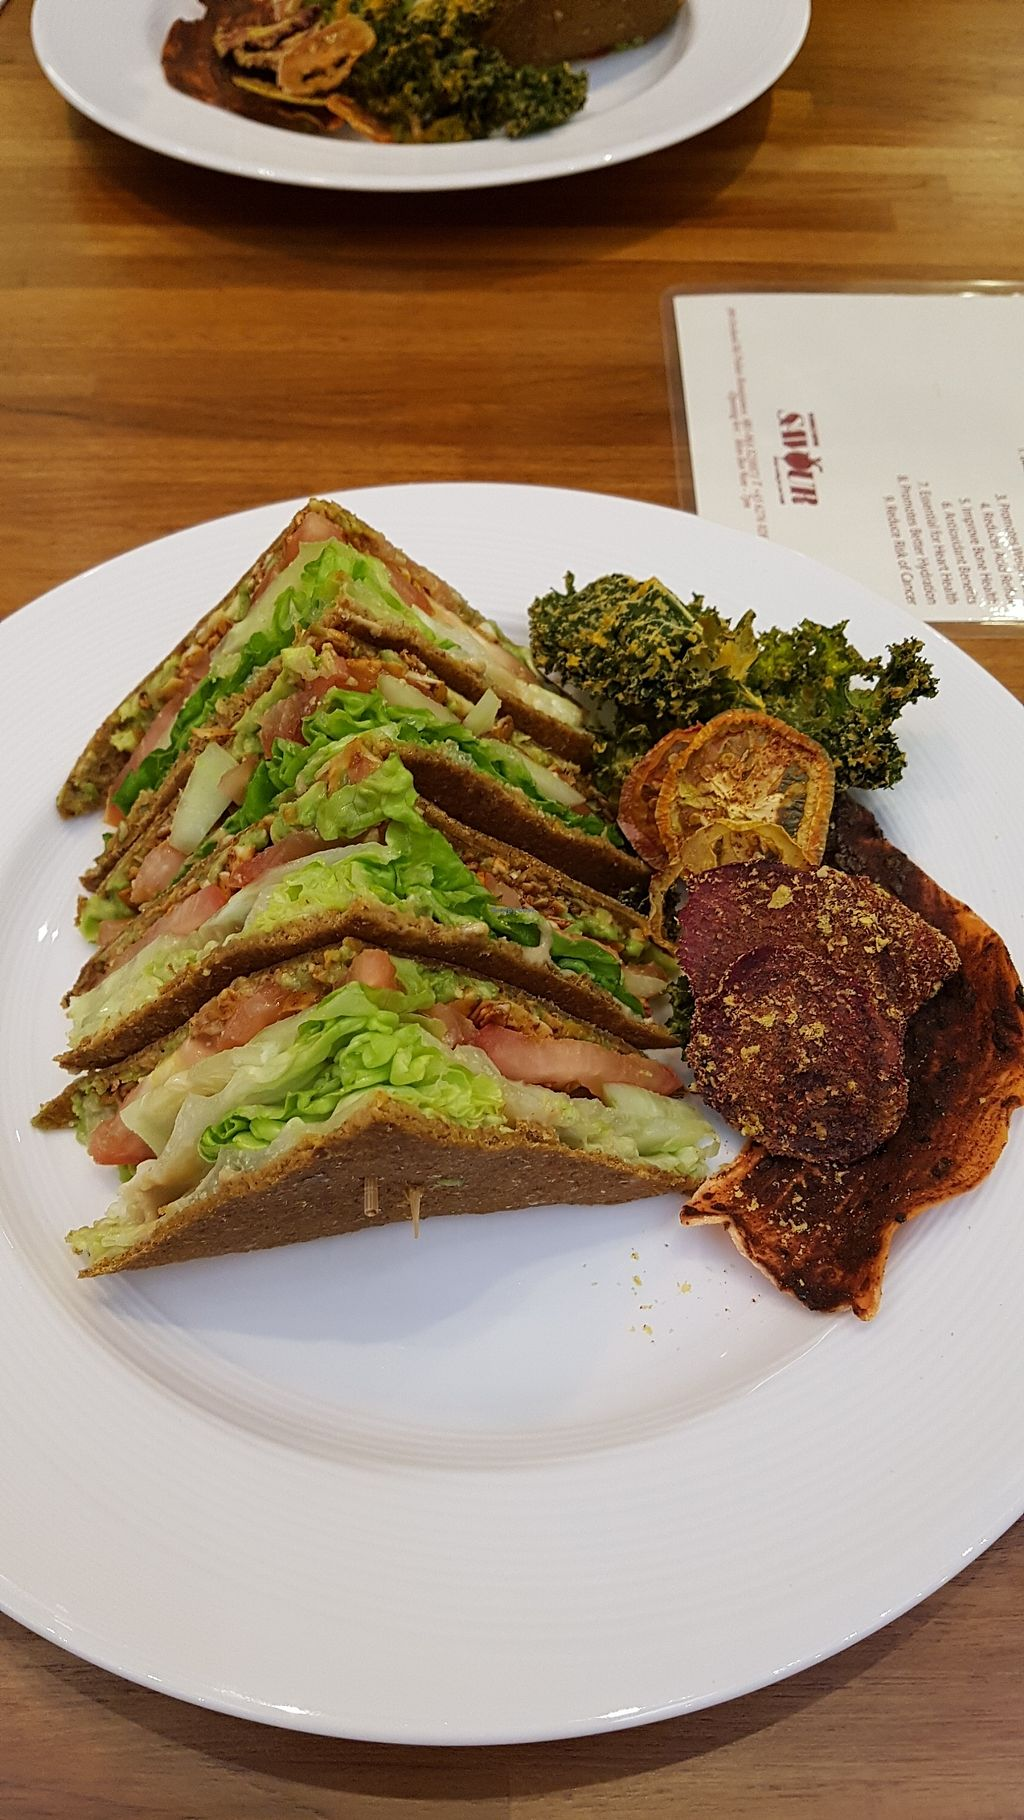 """Photo of Wholesome Savour  by <a href=""""/members/profile/SomethingVegan"""">SomethingVegan</a> <br/>The Savour BLT <br/> January 1, 2018  - <a href='/contact/abuse/image/102730/341779'>Report</a>"""